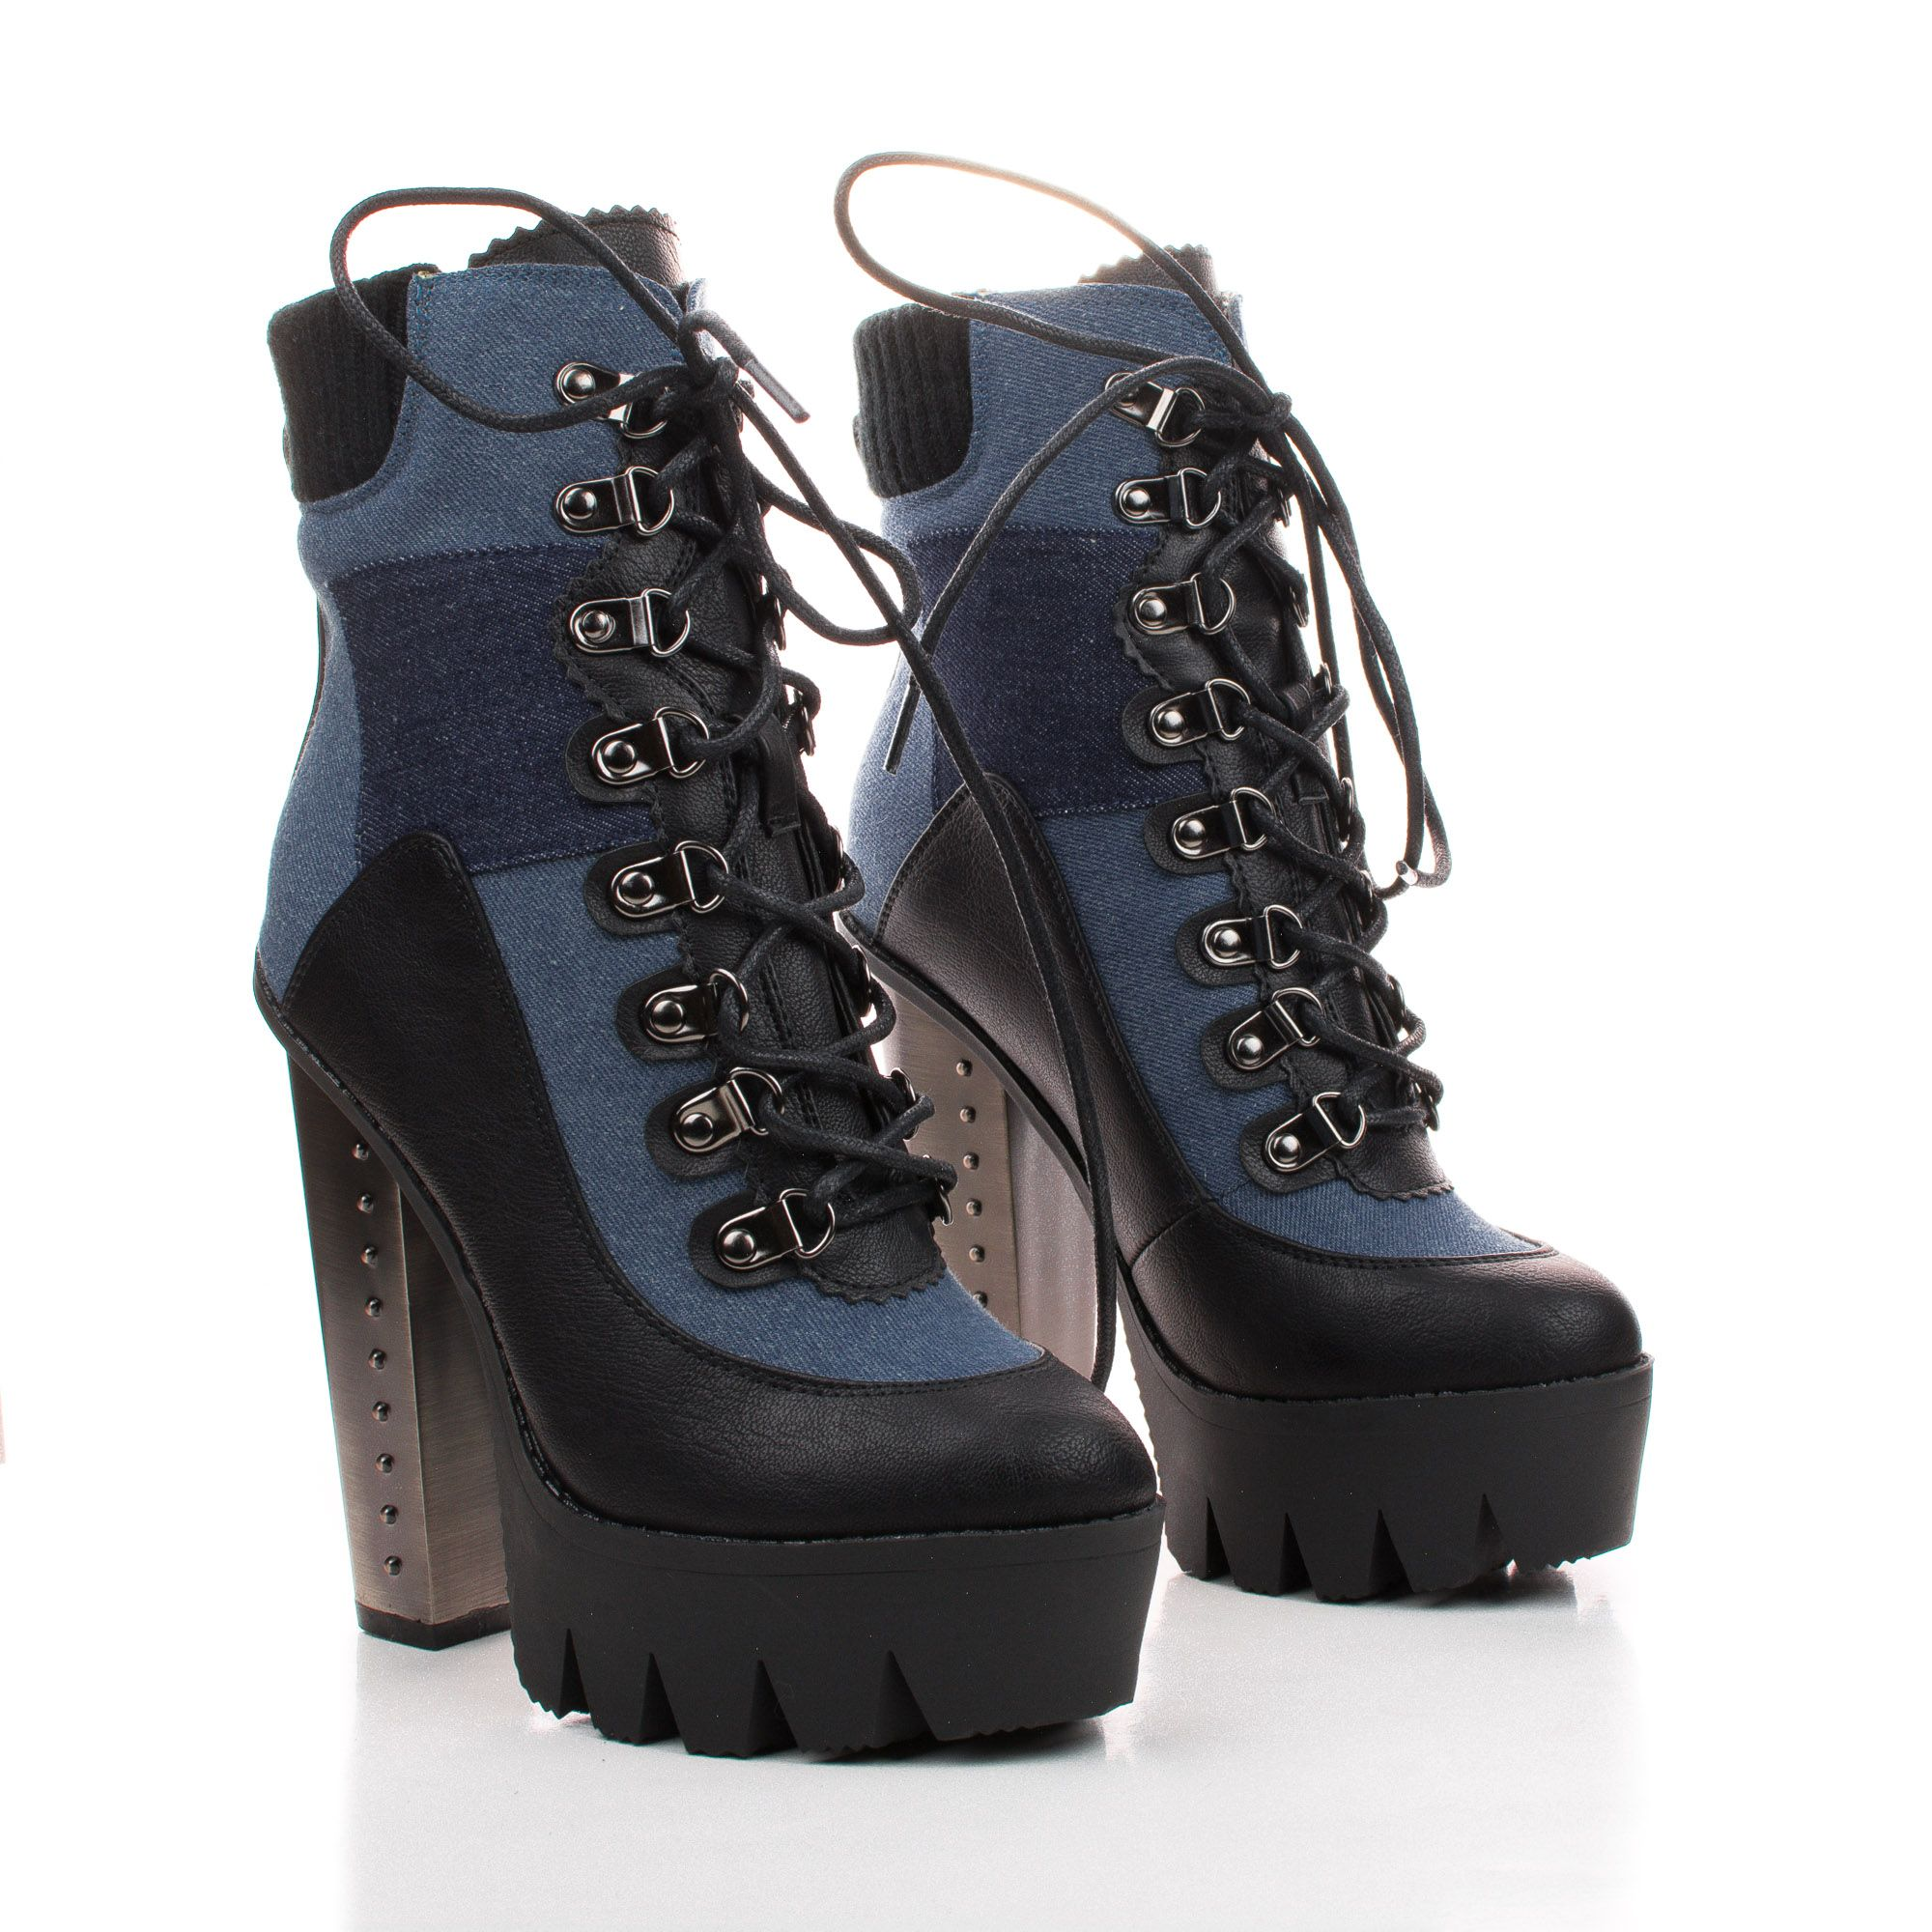 Vanita05 Lace Up Lugsole Platform Studded Chunky Heel Boots. #women #shoes for $49.99, enter AquaPin during checkout to receive 15% off.